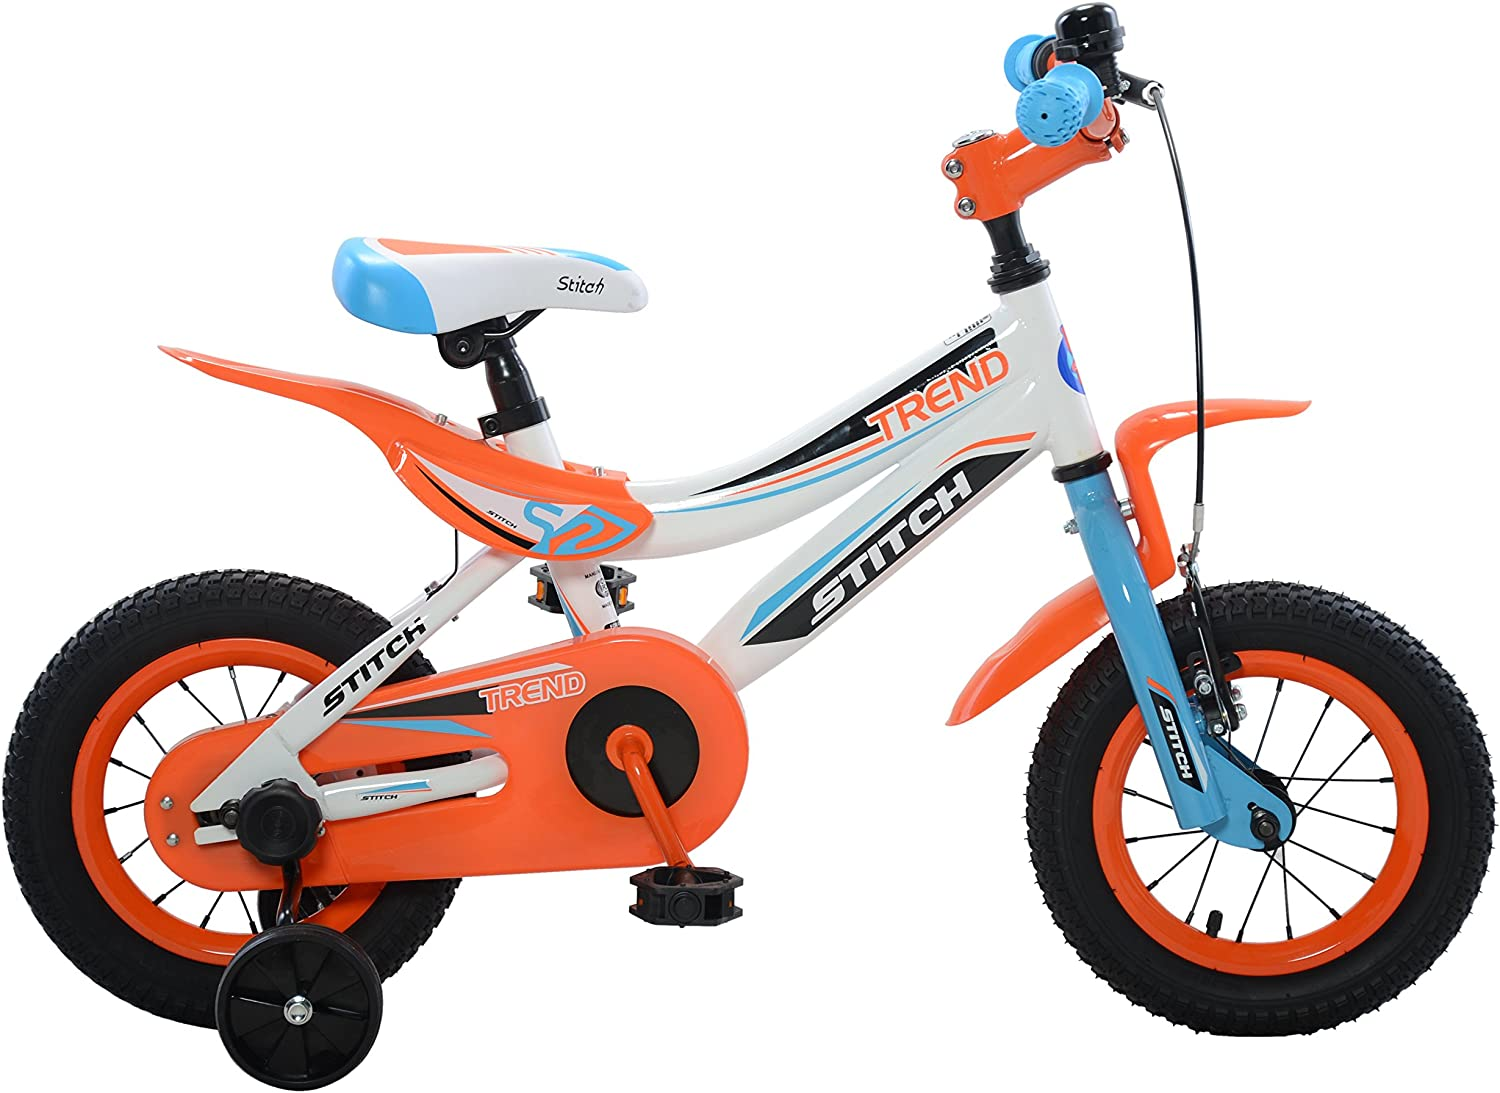 Stitch Trend Boy's Bike, 12 or 16 inch wheels